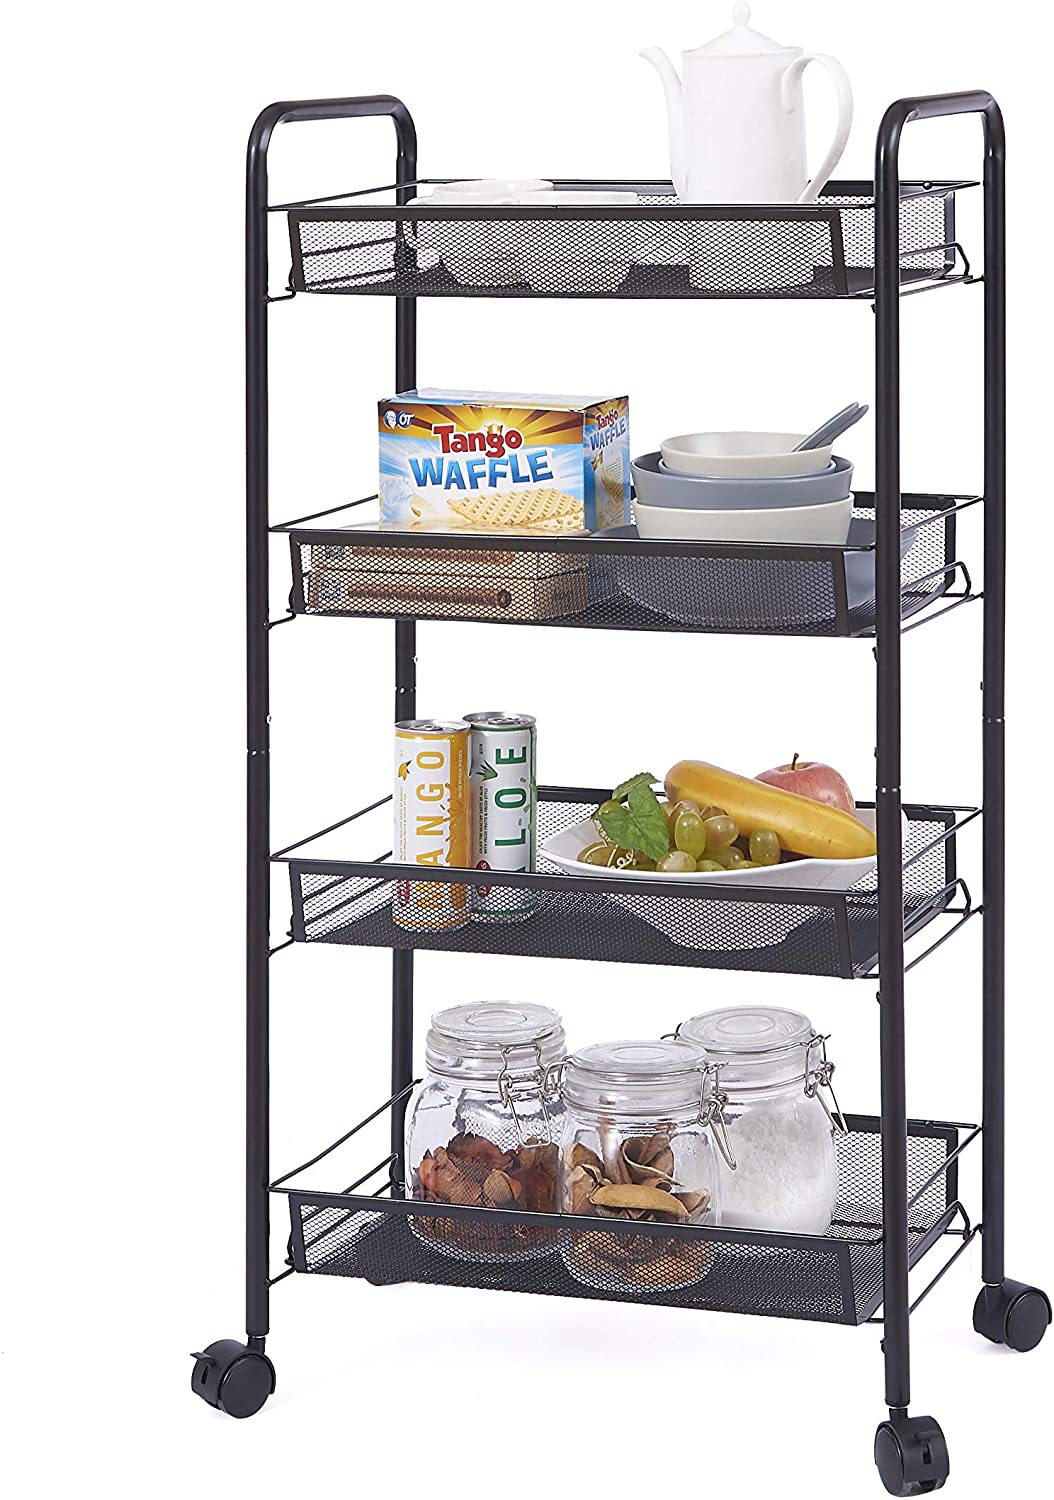 Ovicar Mesh Utility Cart, Rolling Basket Stand for Kitchen & Bathroom, Full Metal Storage Art Trolley Carts with Wheels & 4 Side Hooks (4 Tier, Black)